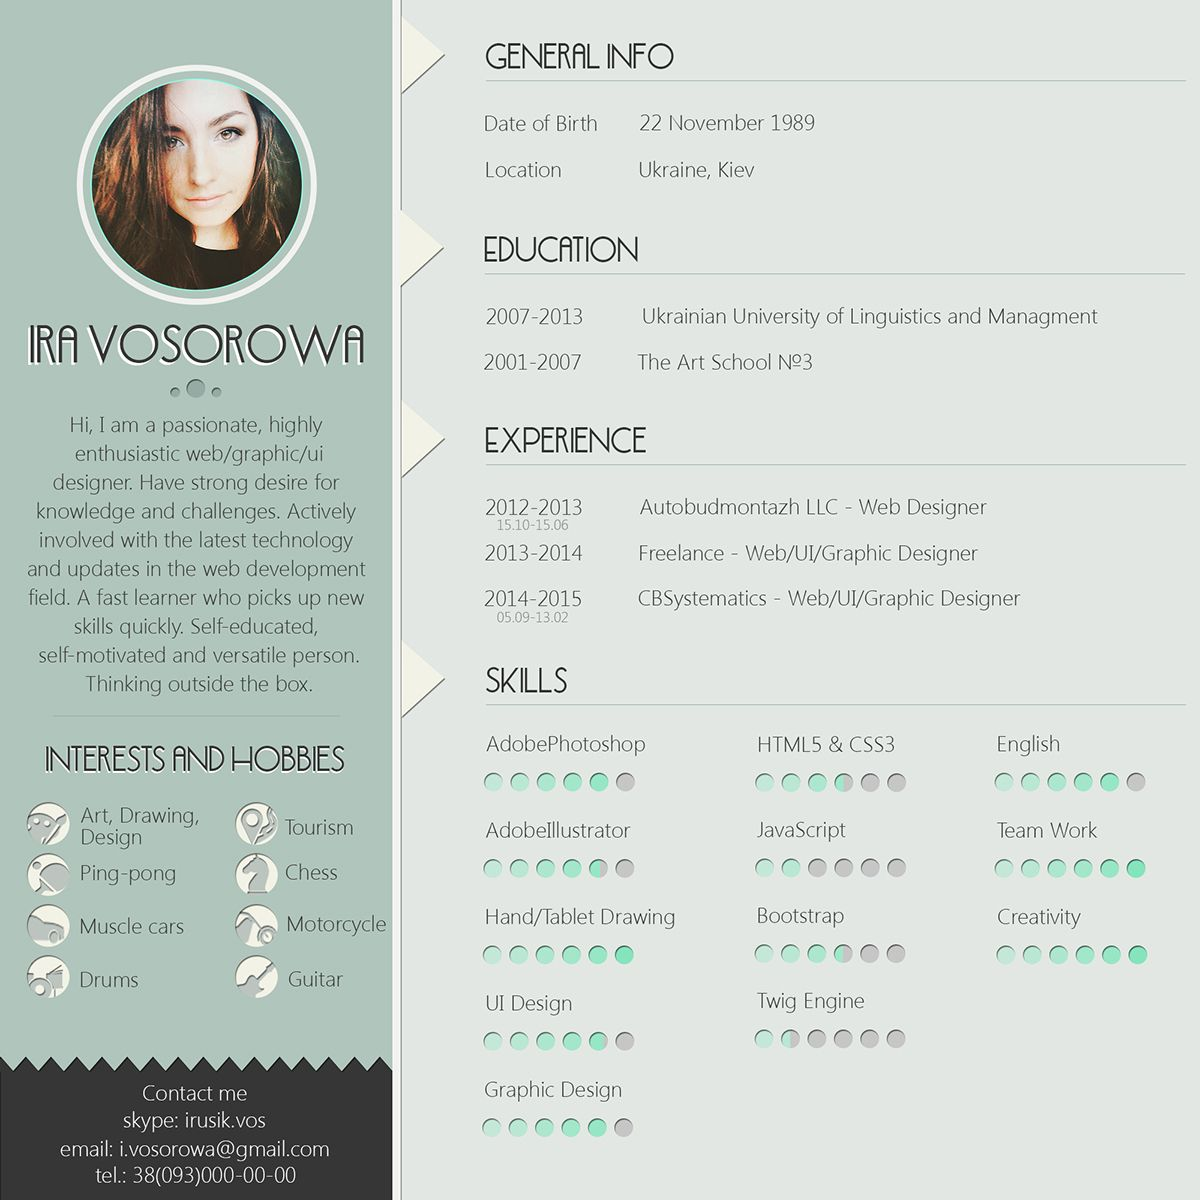 mint cv design on the links below you can get psd template mint cv design on the links below you can get psd template fonts from my dropbox and online version from github by rosivanov don`t forget to